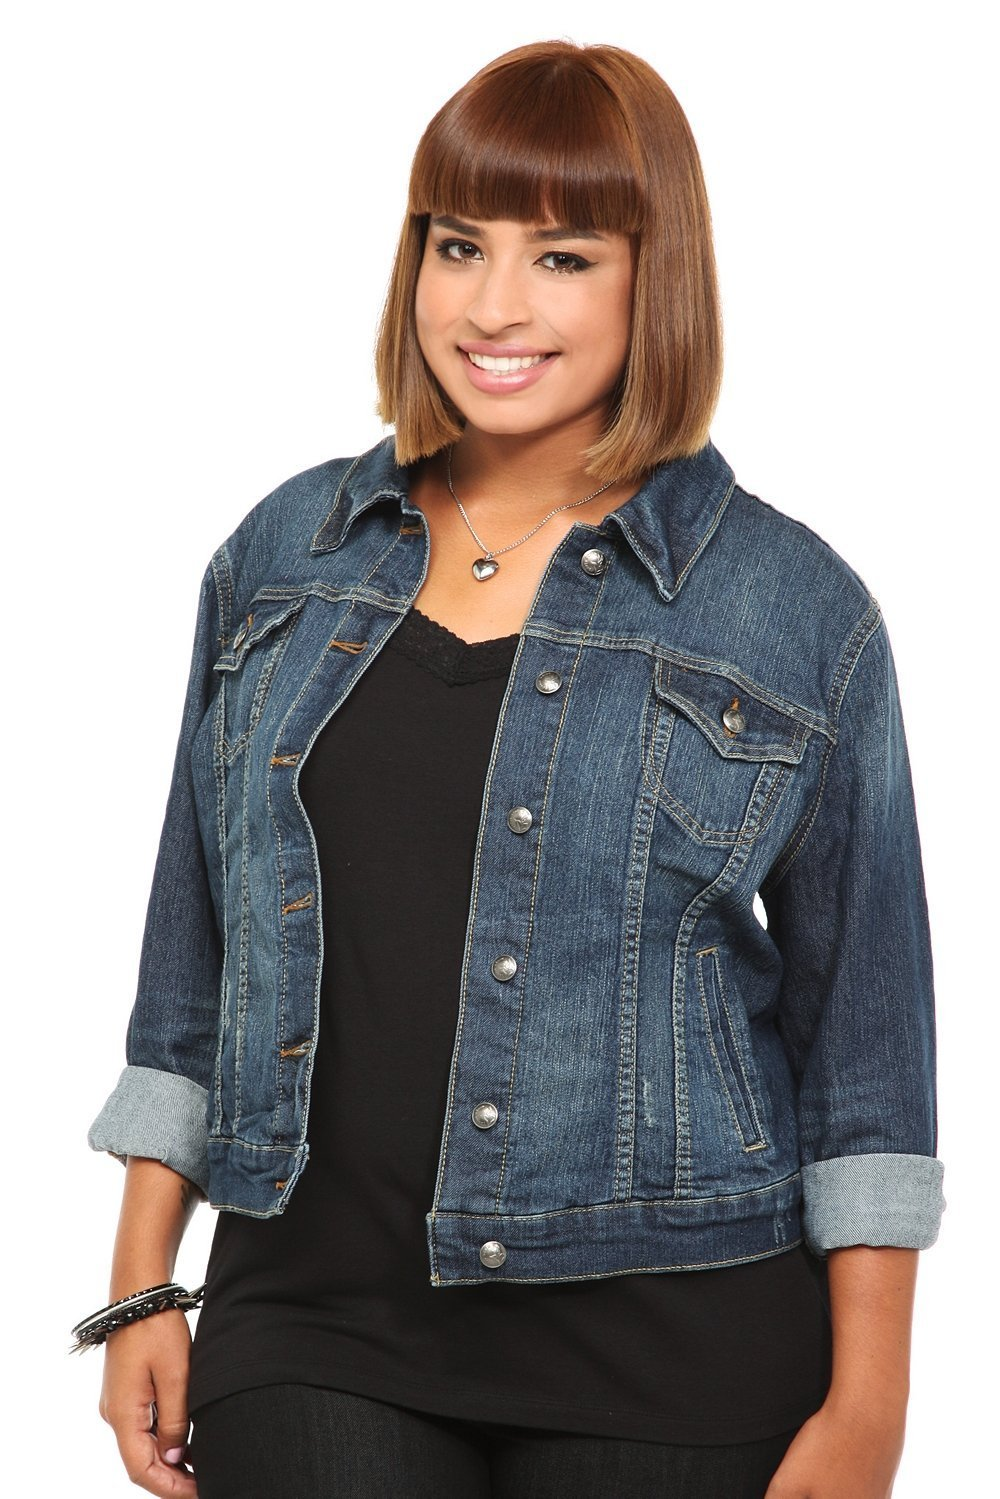 6a0b9e48db19f Plus Size Clothing Spring 2015 Trends - Denim! Shirts